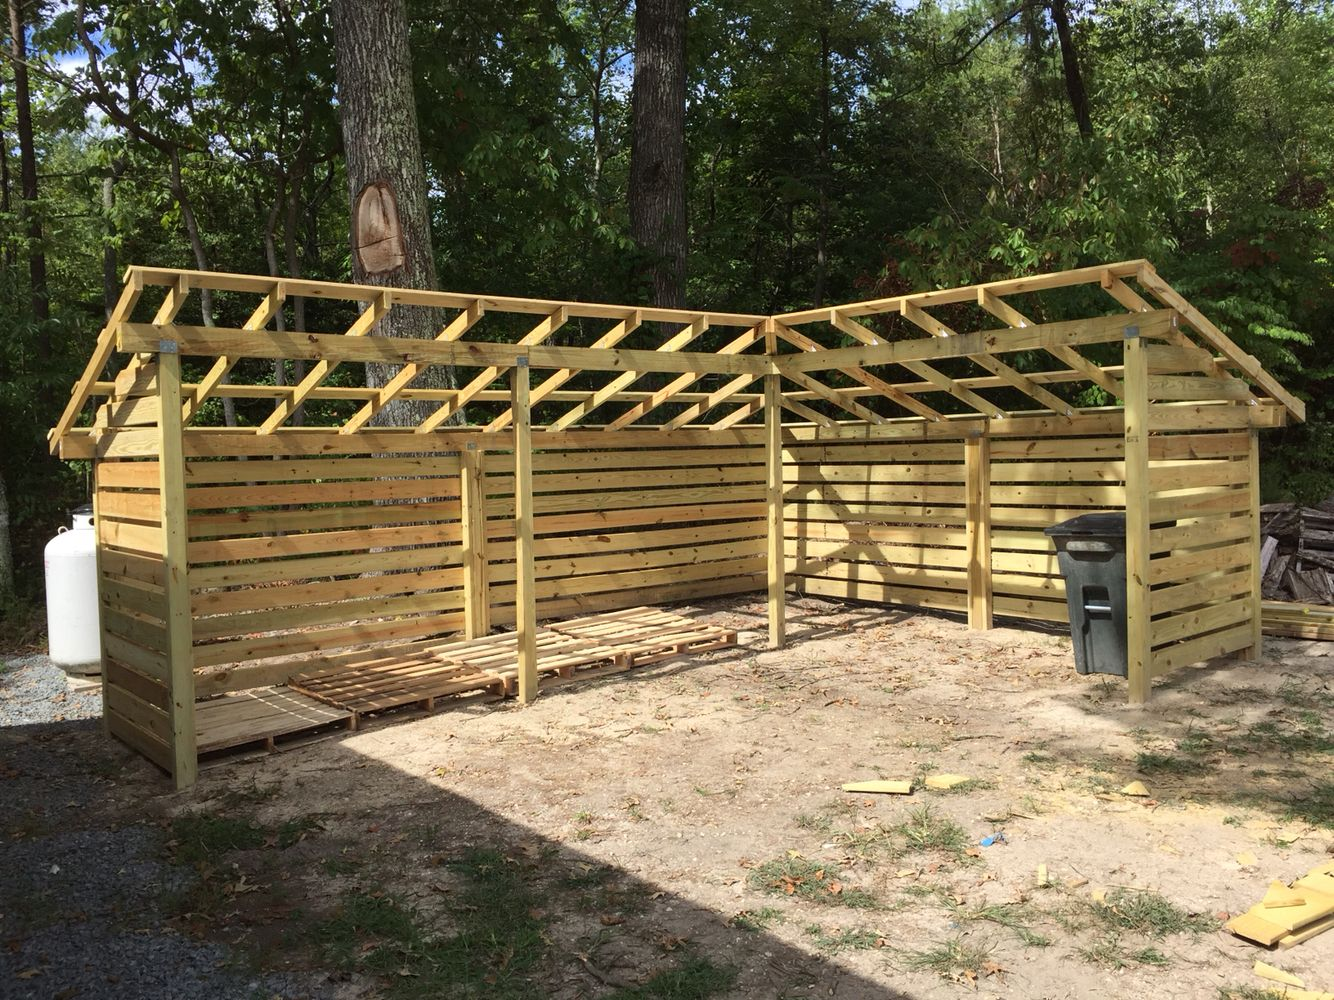 High Quality My Firewood Shed, Woodpile, Stacking Wood